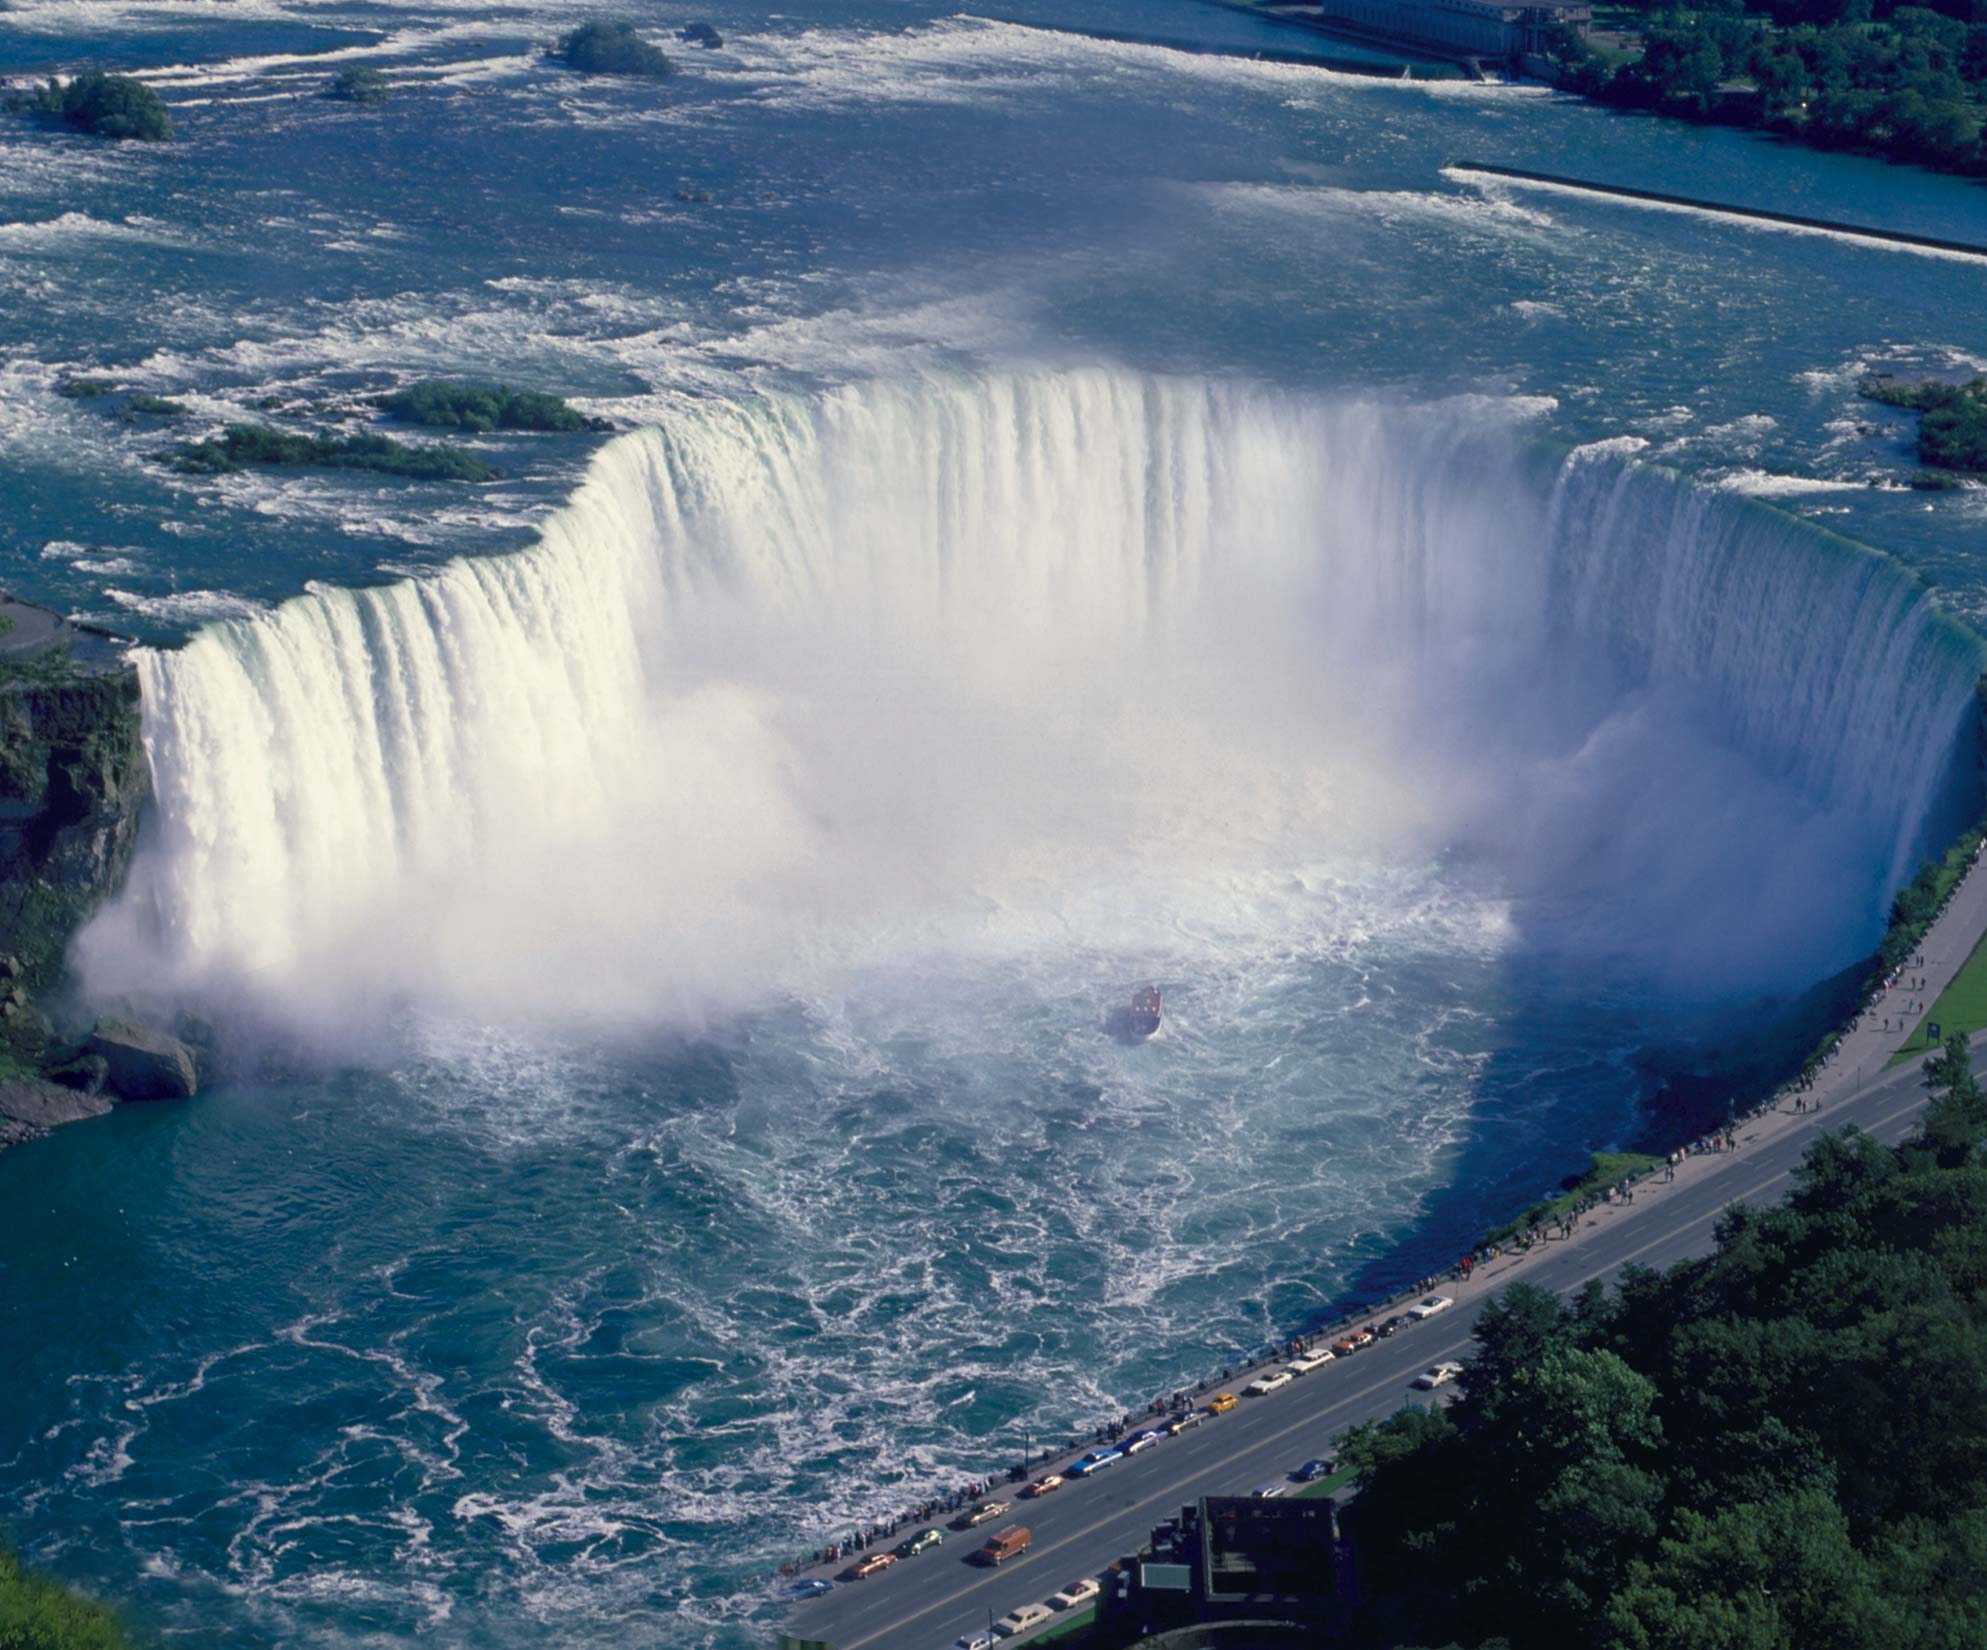 42-floor Embassy Suites By Hilton® Fallsview Hotel overlooking the famous horseshoe falls in Niagara Falls, Ontario, Canada